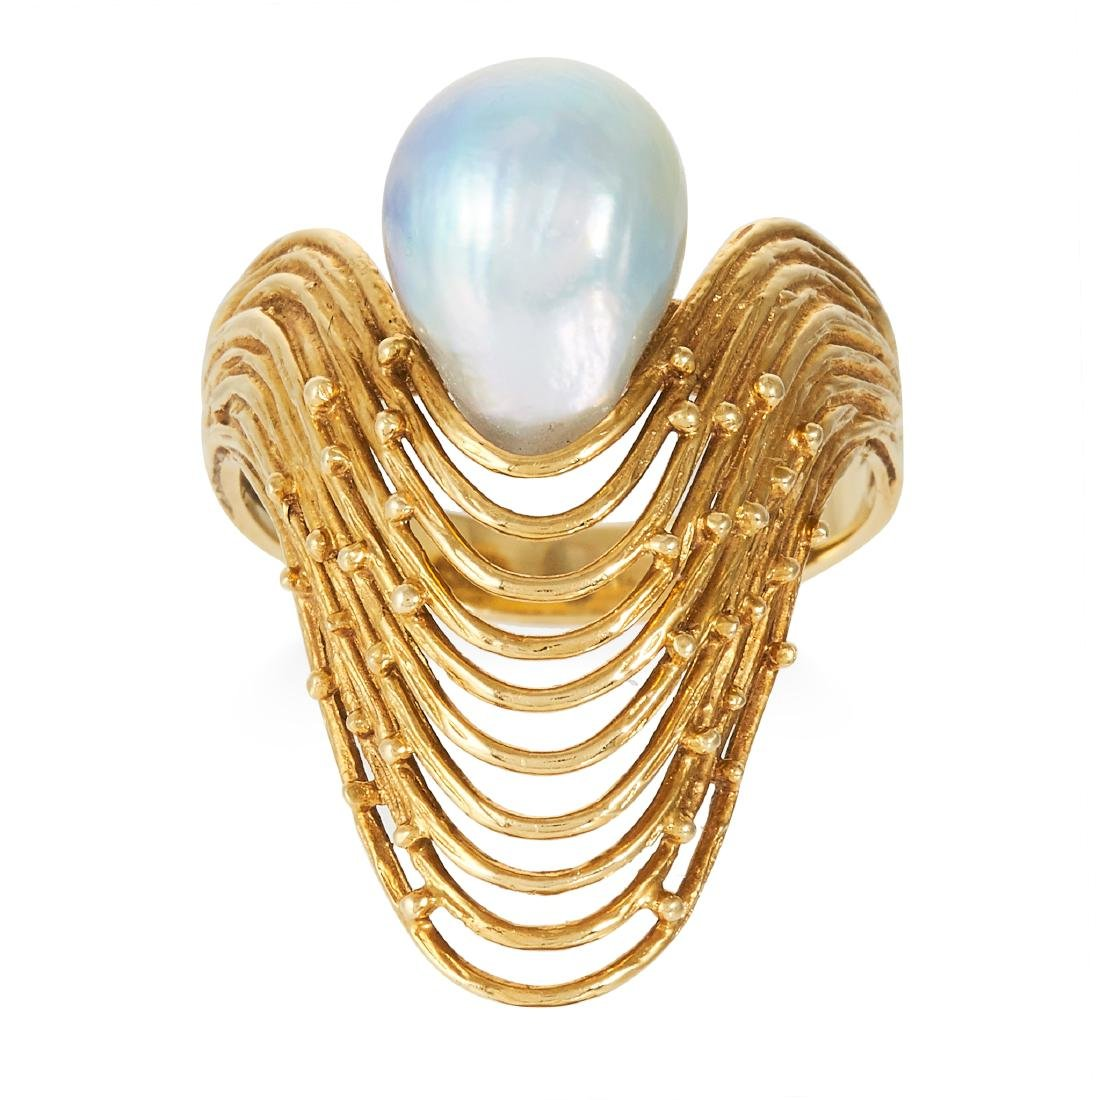 A PEARL DRESS RING, in 18 carat yellow gold, of